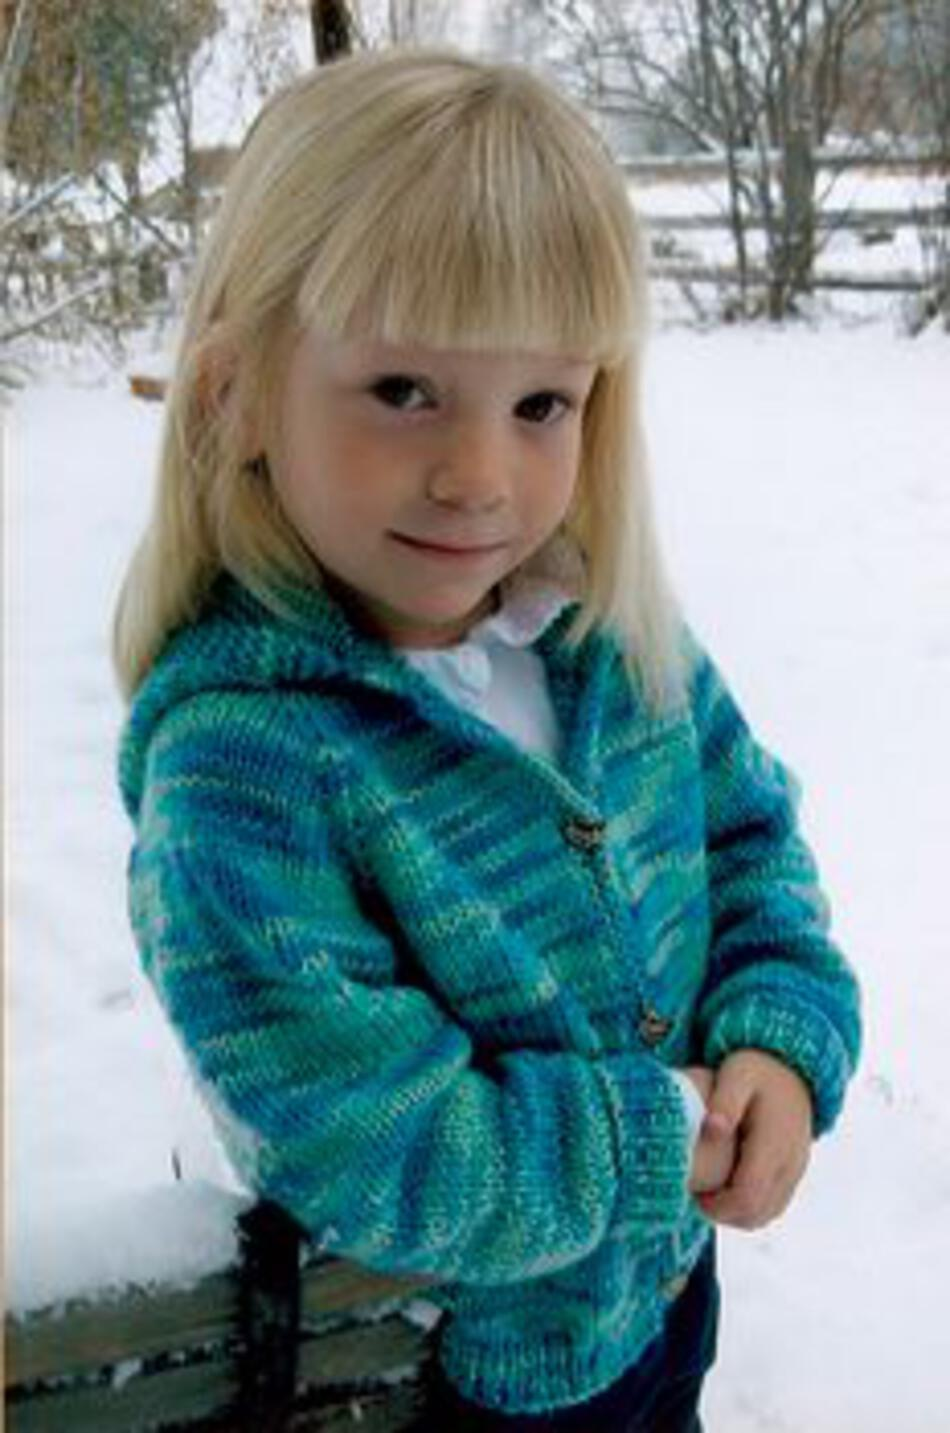 Knitting Patterns Childrenaposs Neck Down Cardigan by Knitting Pure and Simple